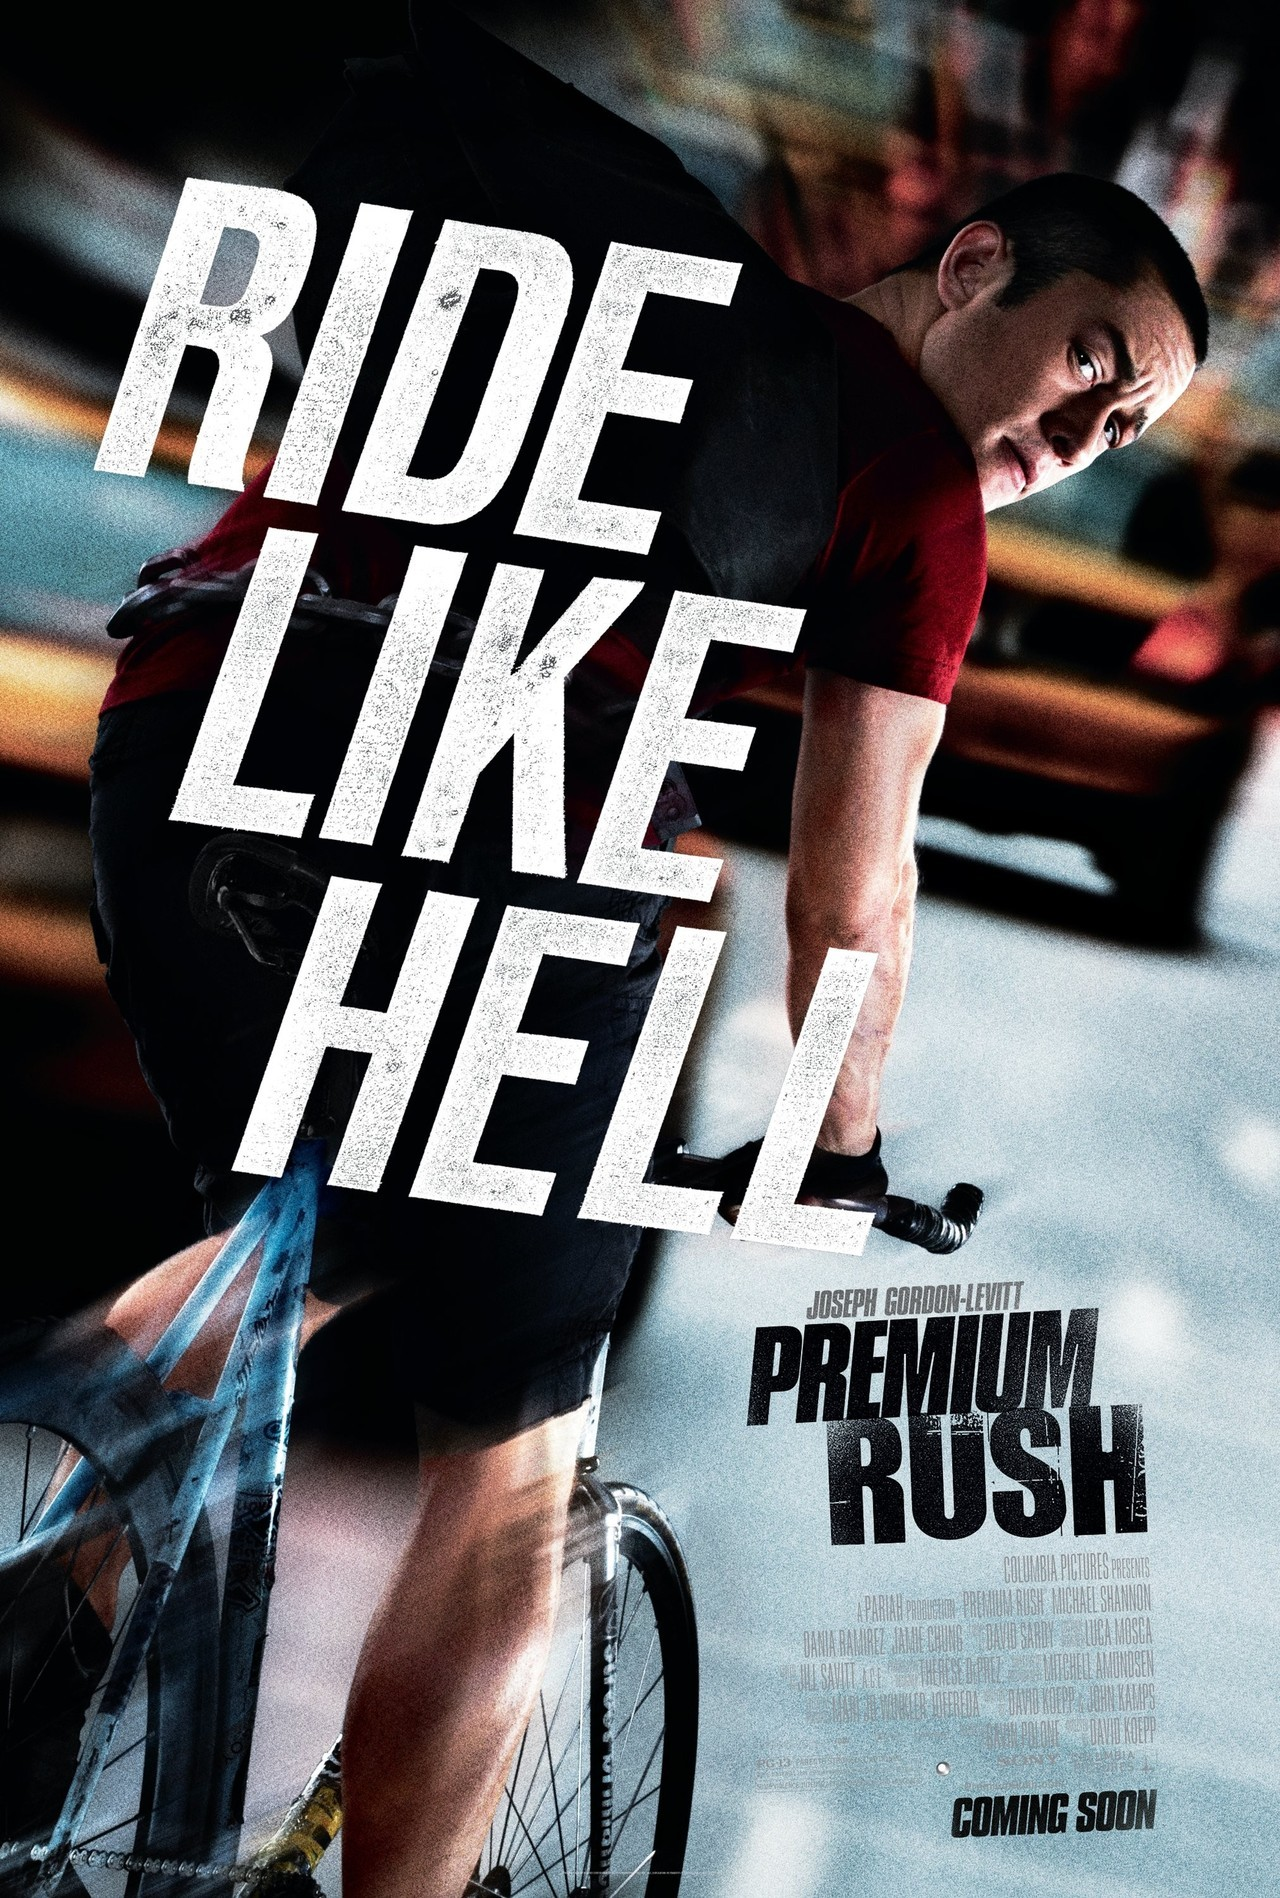 PREMIUM RUSH is a movie starring Joseph Gordon Levitt as a bike messenger in New York who has a package that someone is trying to desperately get back before it gets delivered. Sound familiar to anyone else older than 30?   I haven't seen this yet but it looks pretty damn fun and as a fan of, I guess you could say, its predecessor QUICKSILVER (which starred Kevin Bacon which had largely the same premise behind it) and a biker, I am drawn to this.  The preview looks solid and Levitt has come into his own of late as a commodity that is reliable and enjoyable, so I'm looking forward to this for sure.